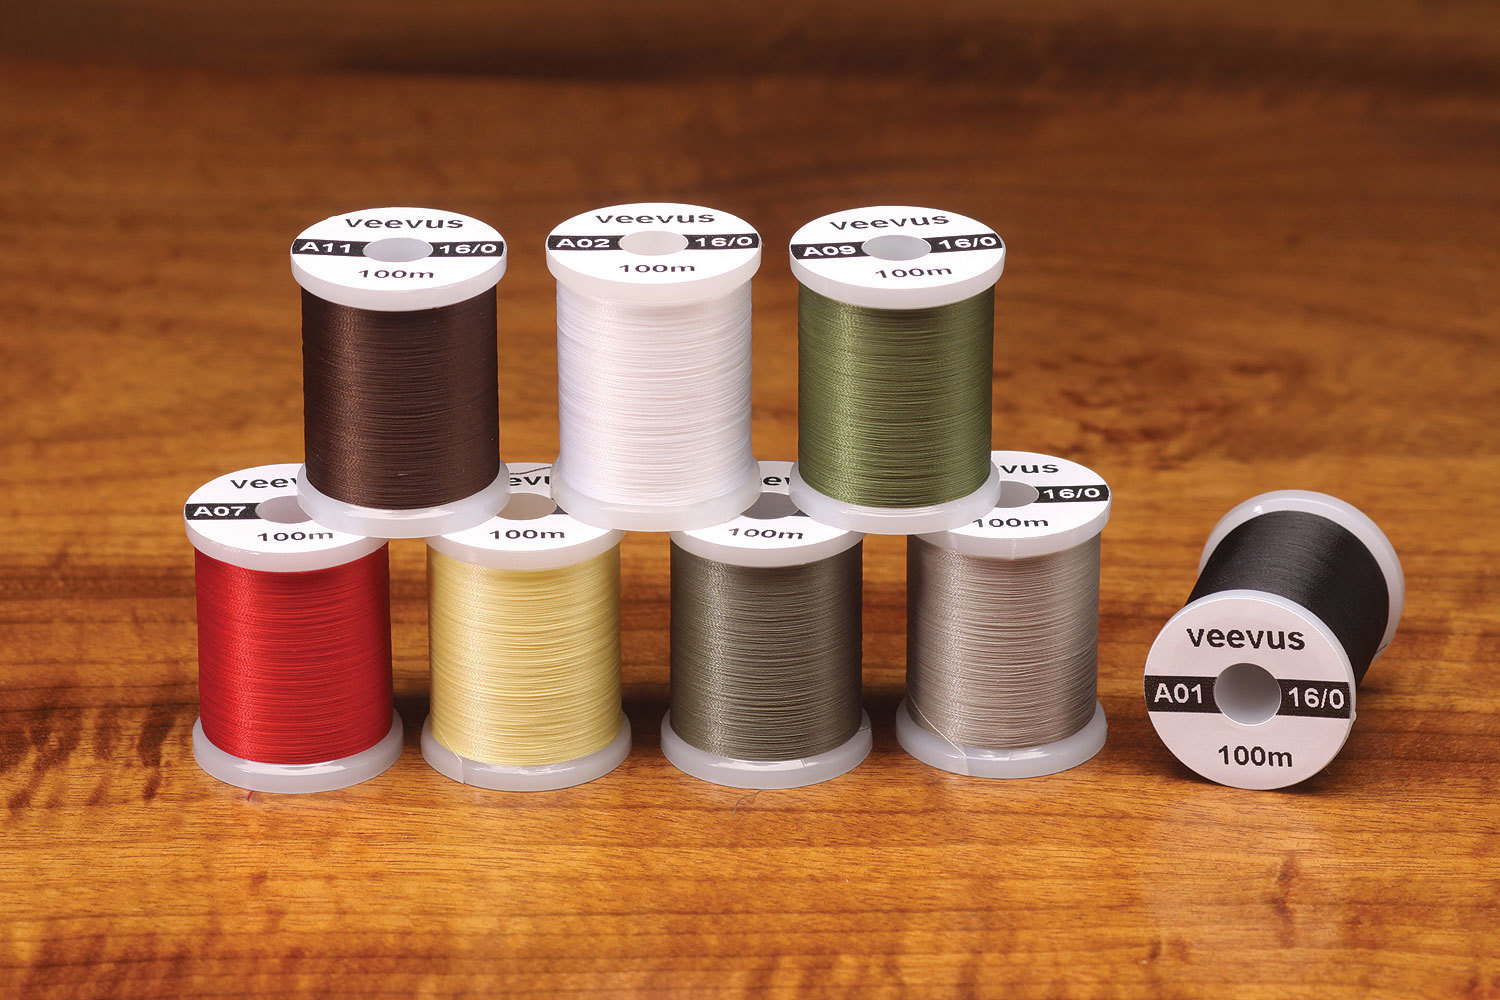 Veevus 16/0 Tying Thread (100m)